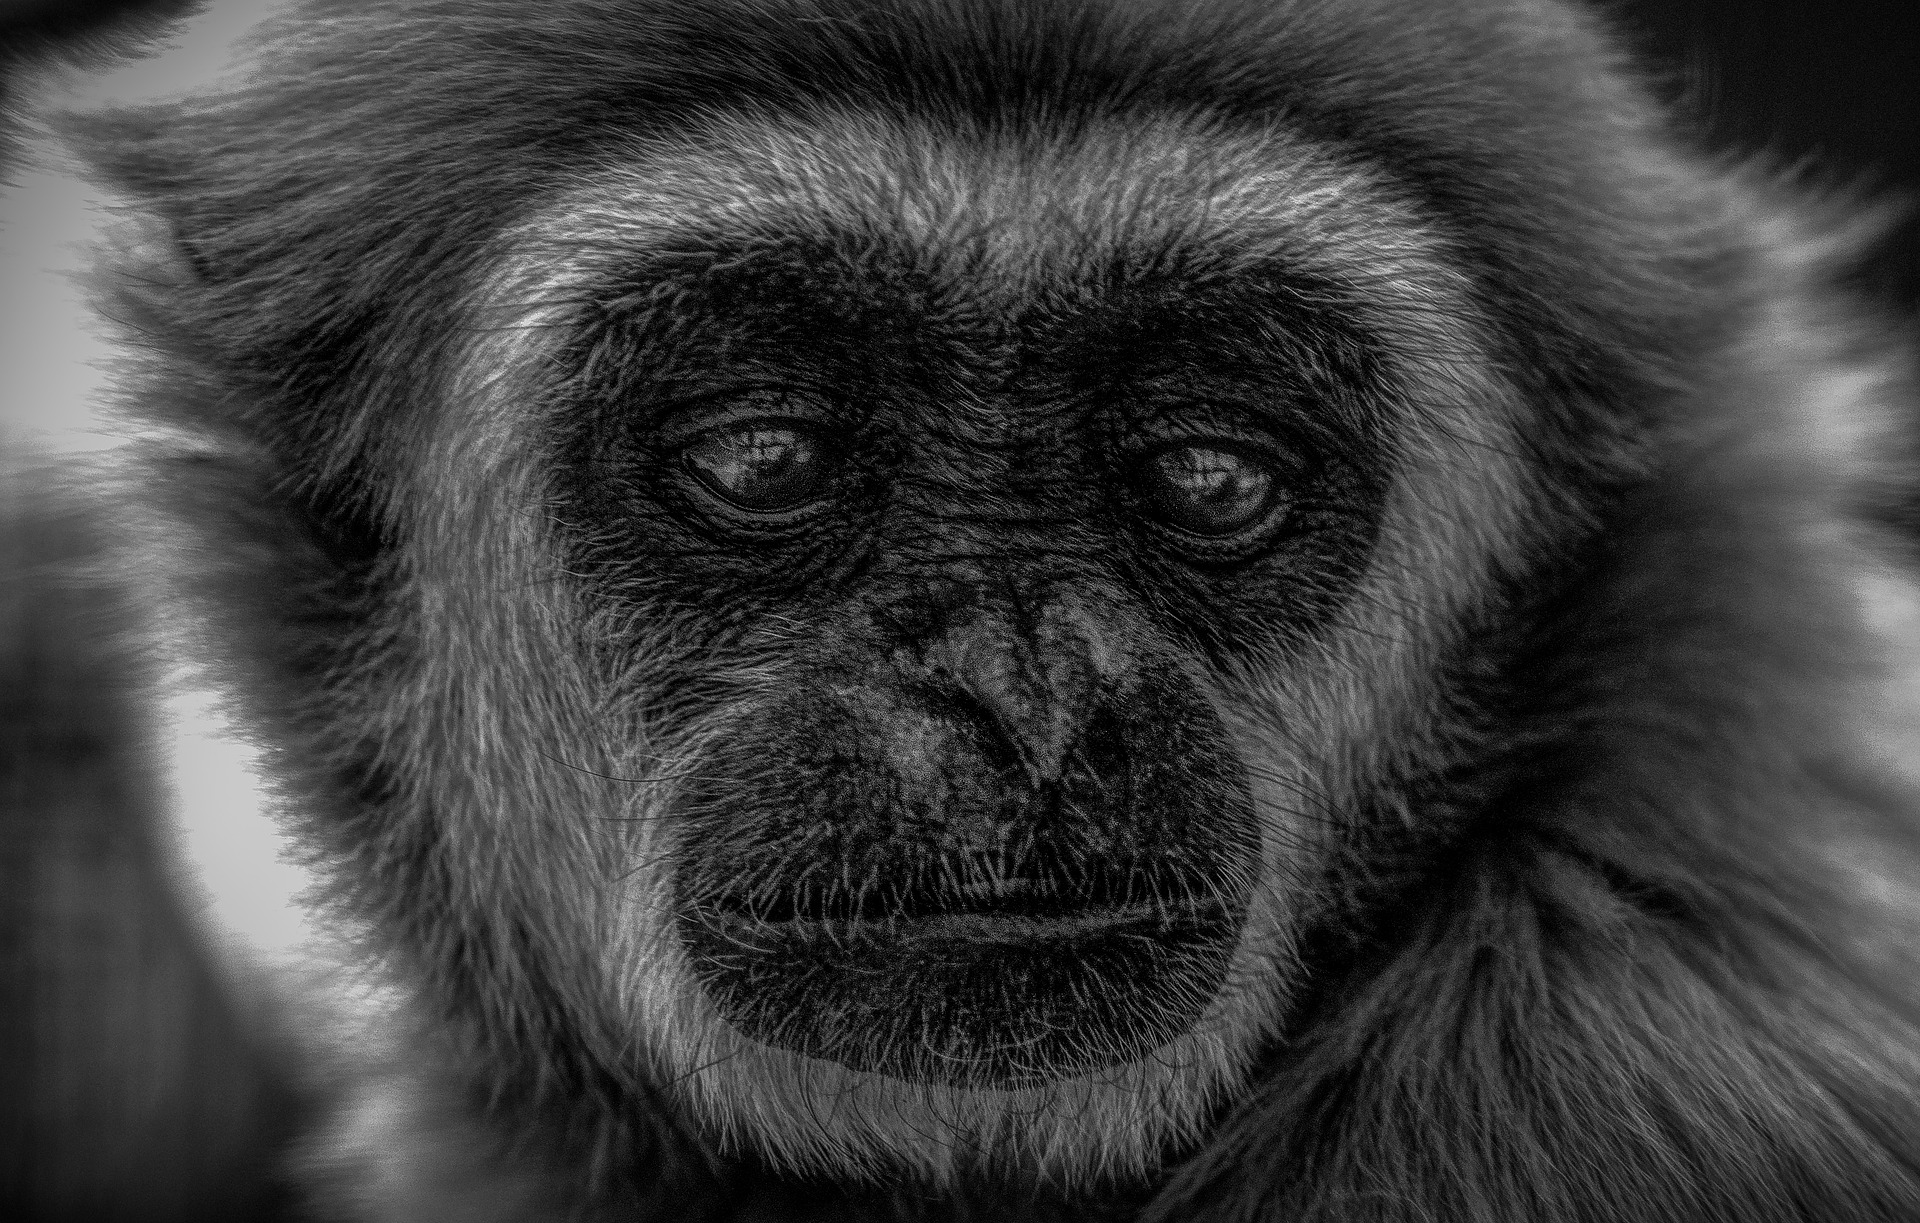 The peculiarities of gibbons